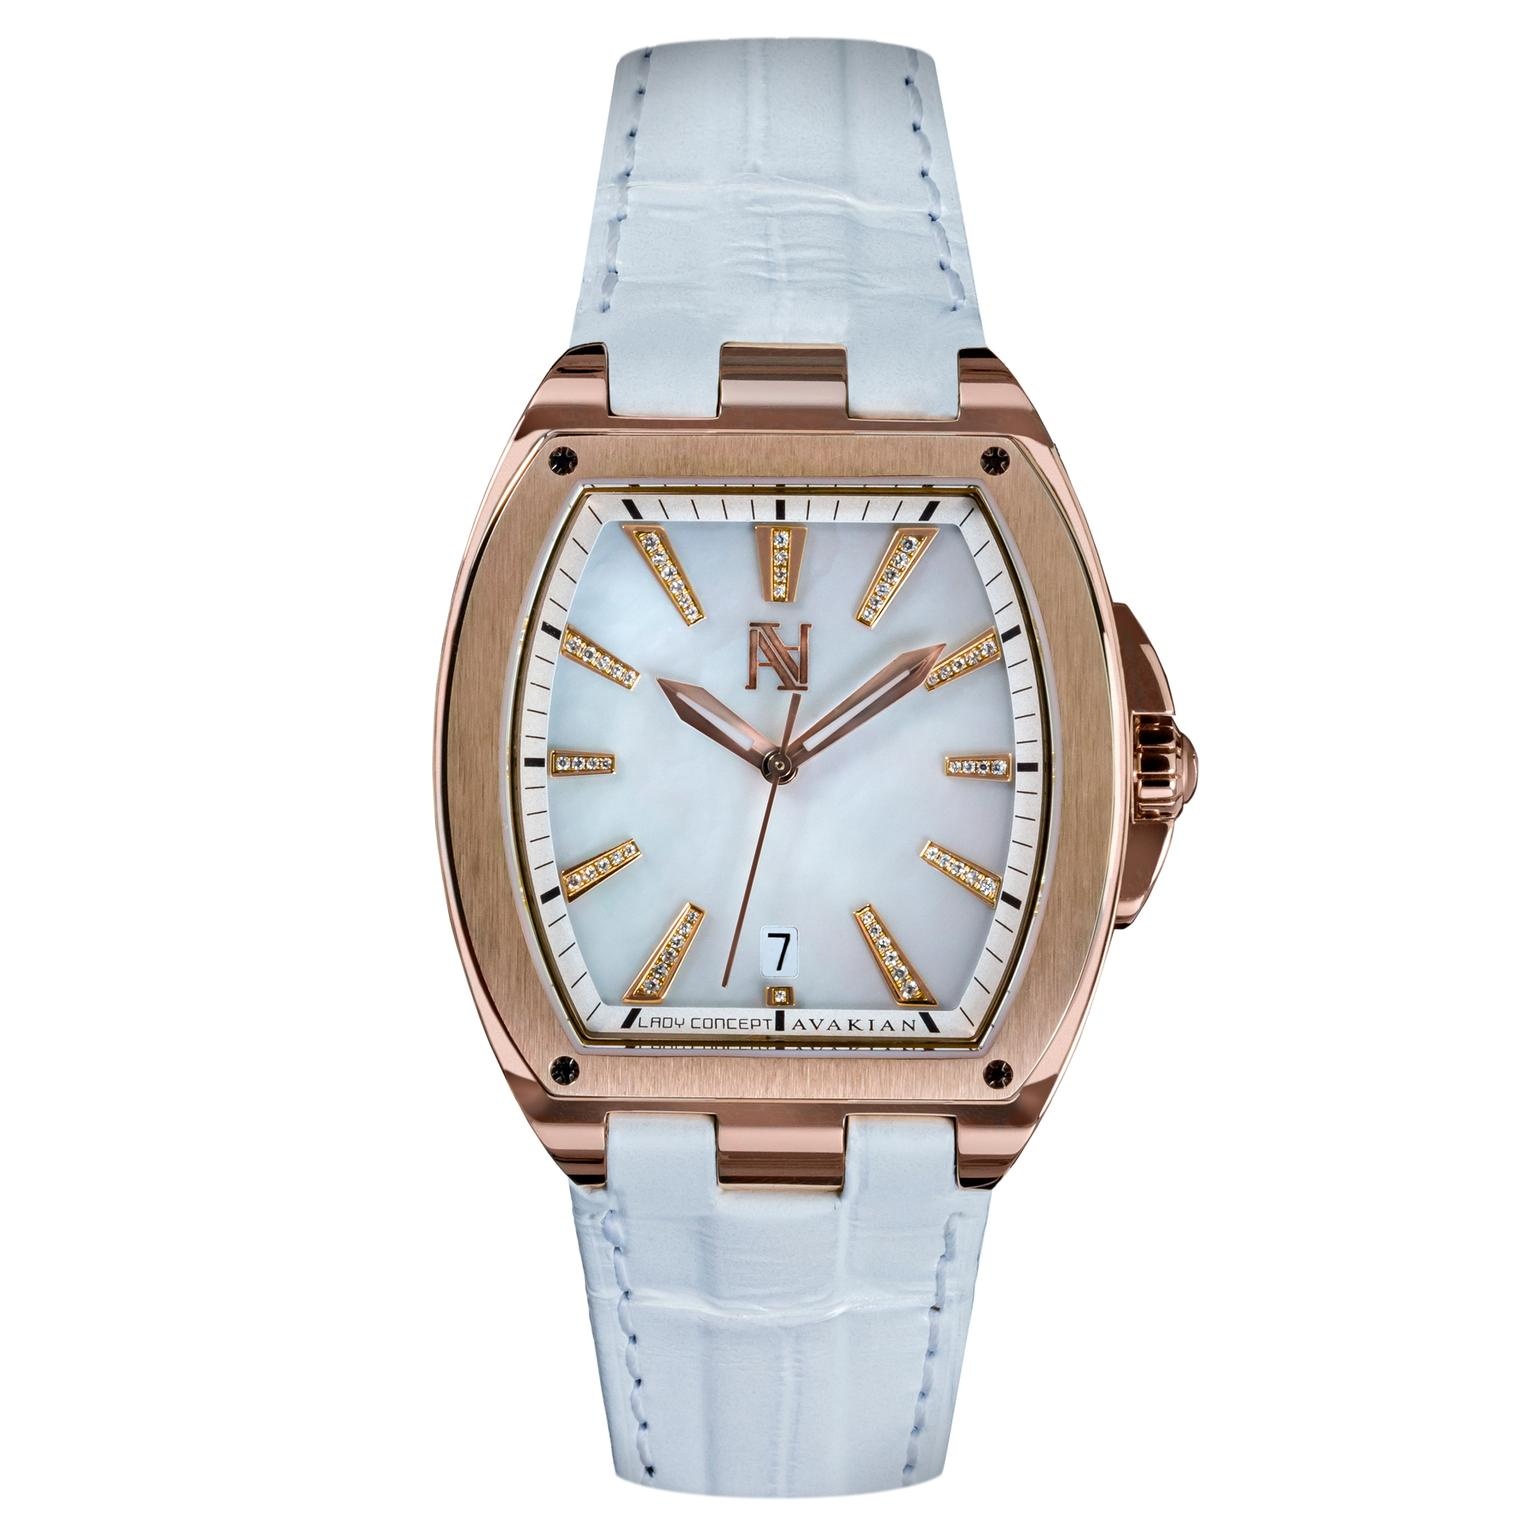 Avakian Lady Concept white watch